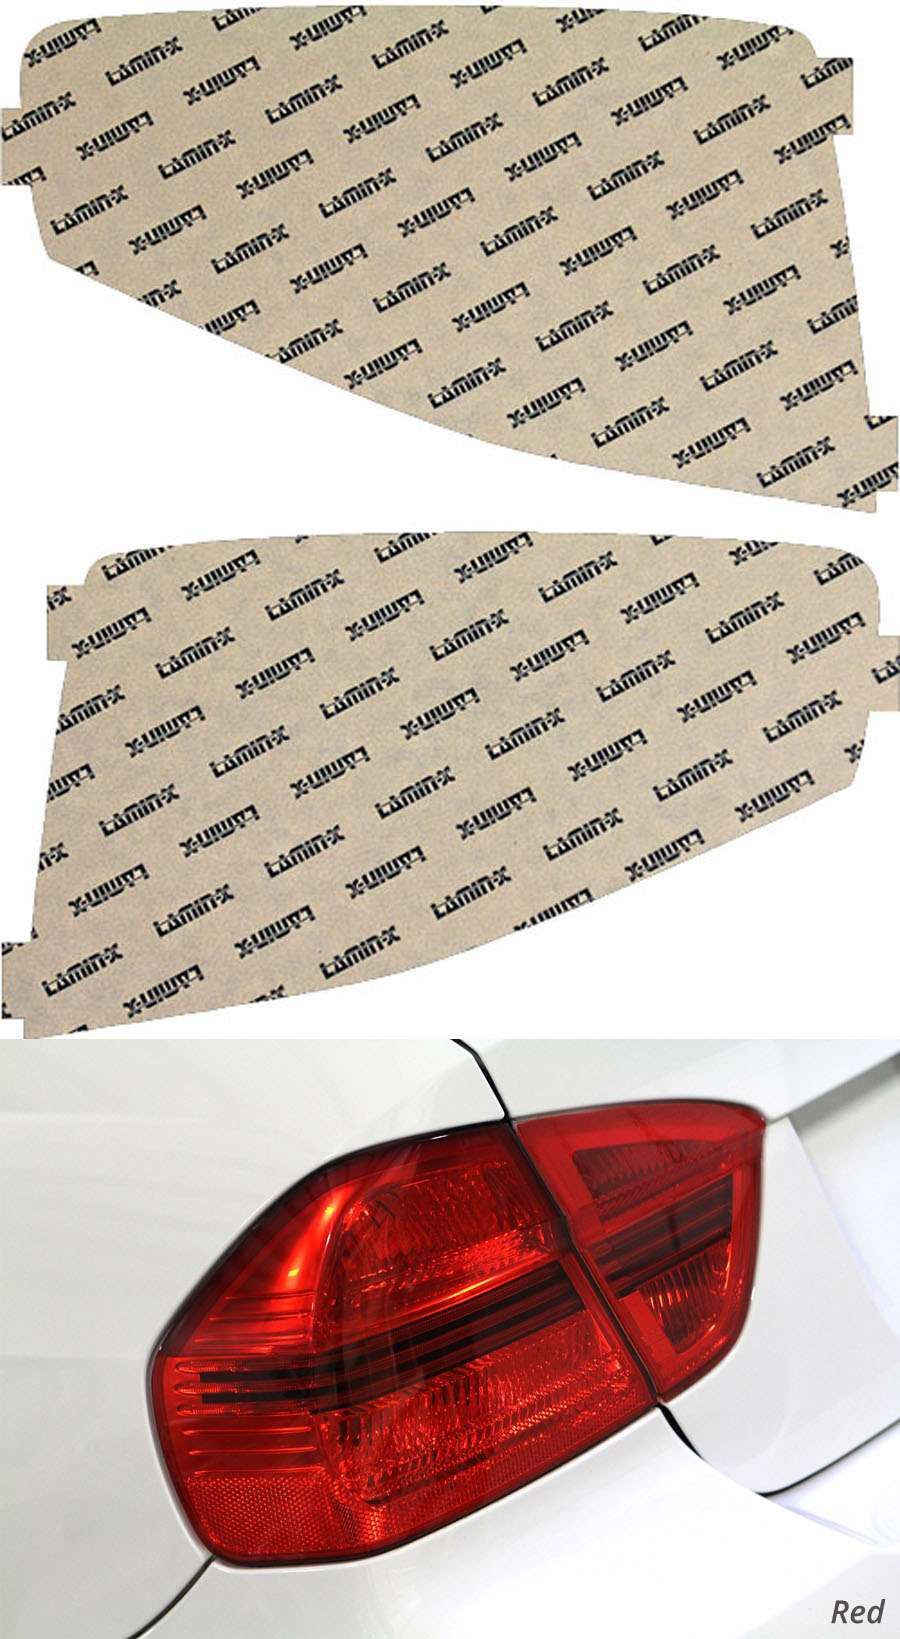 Ford Focus 08-11 Red Tail Light Covers Lamin-X F226R